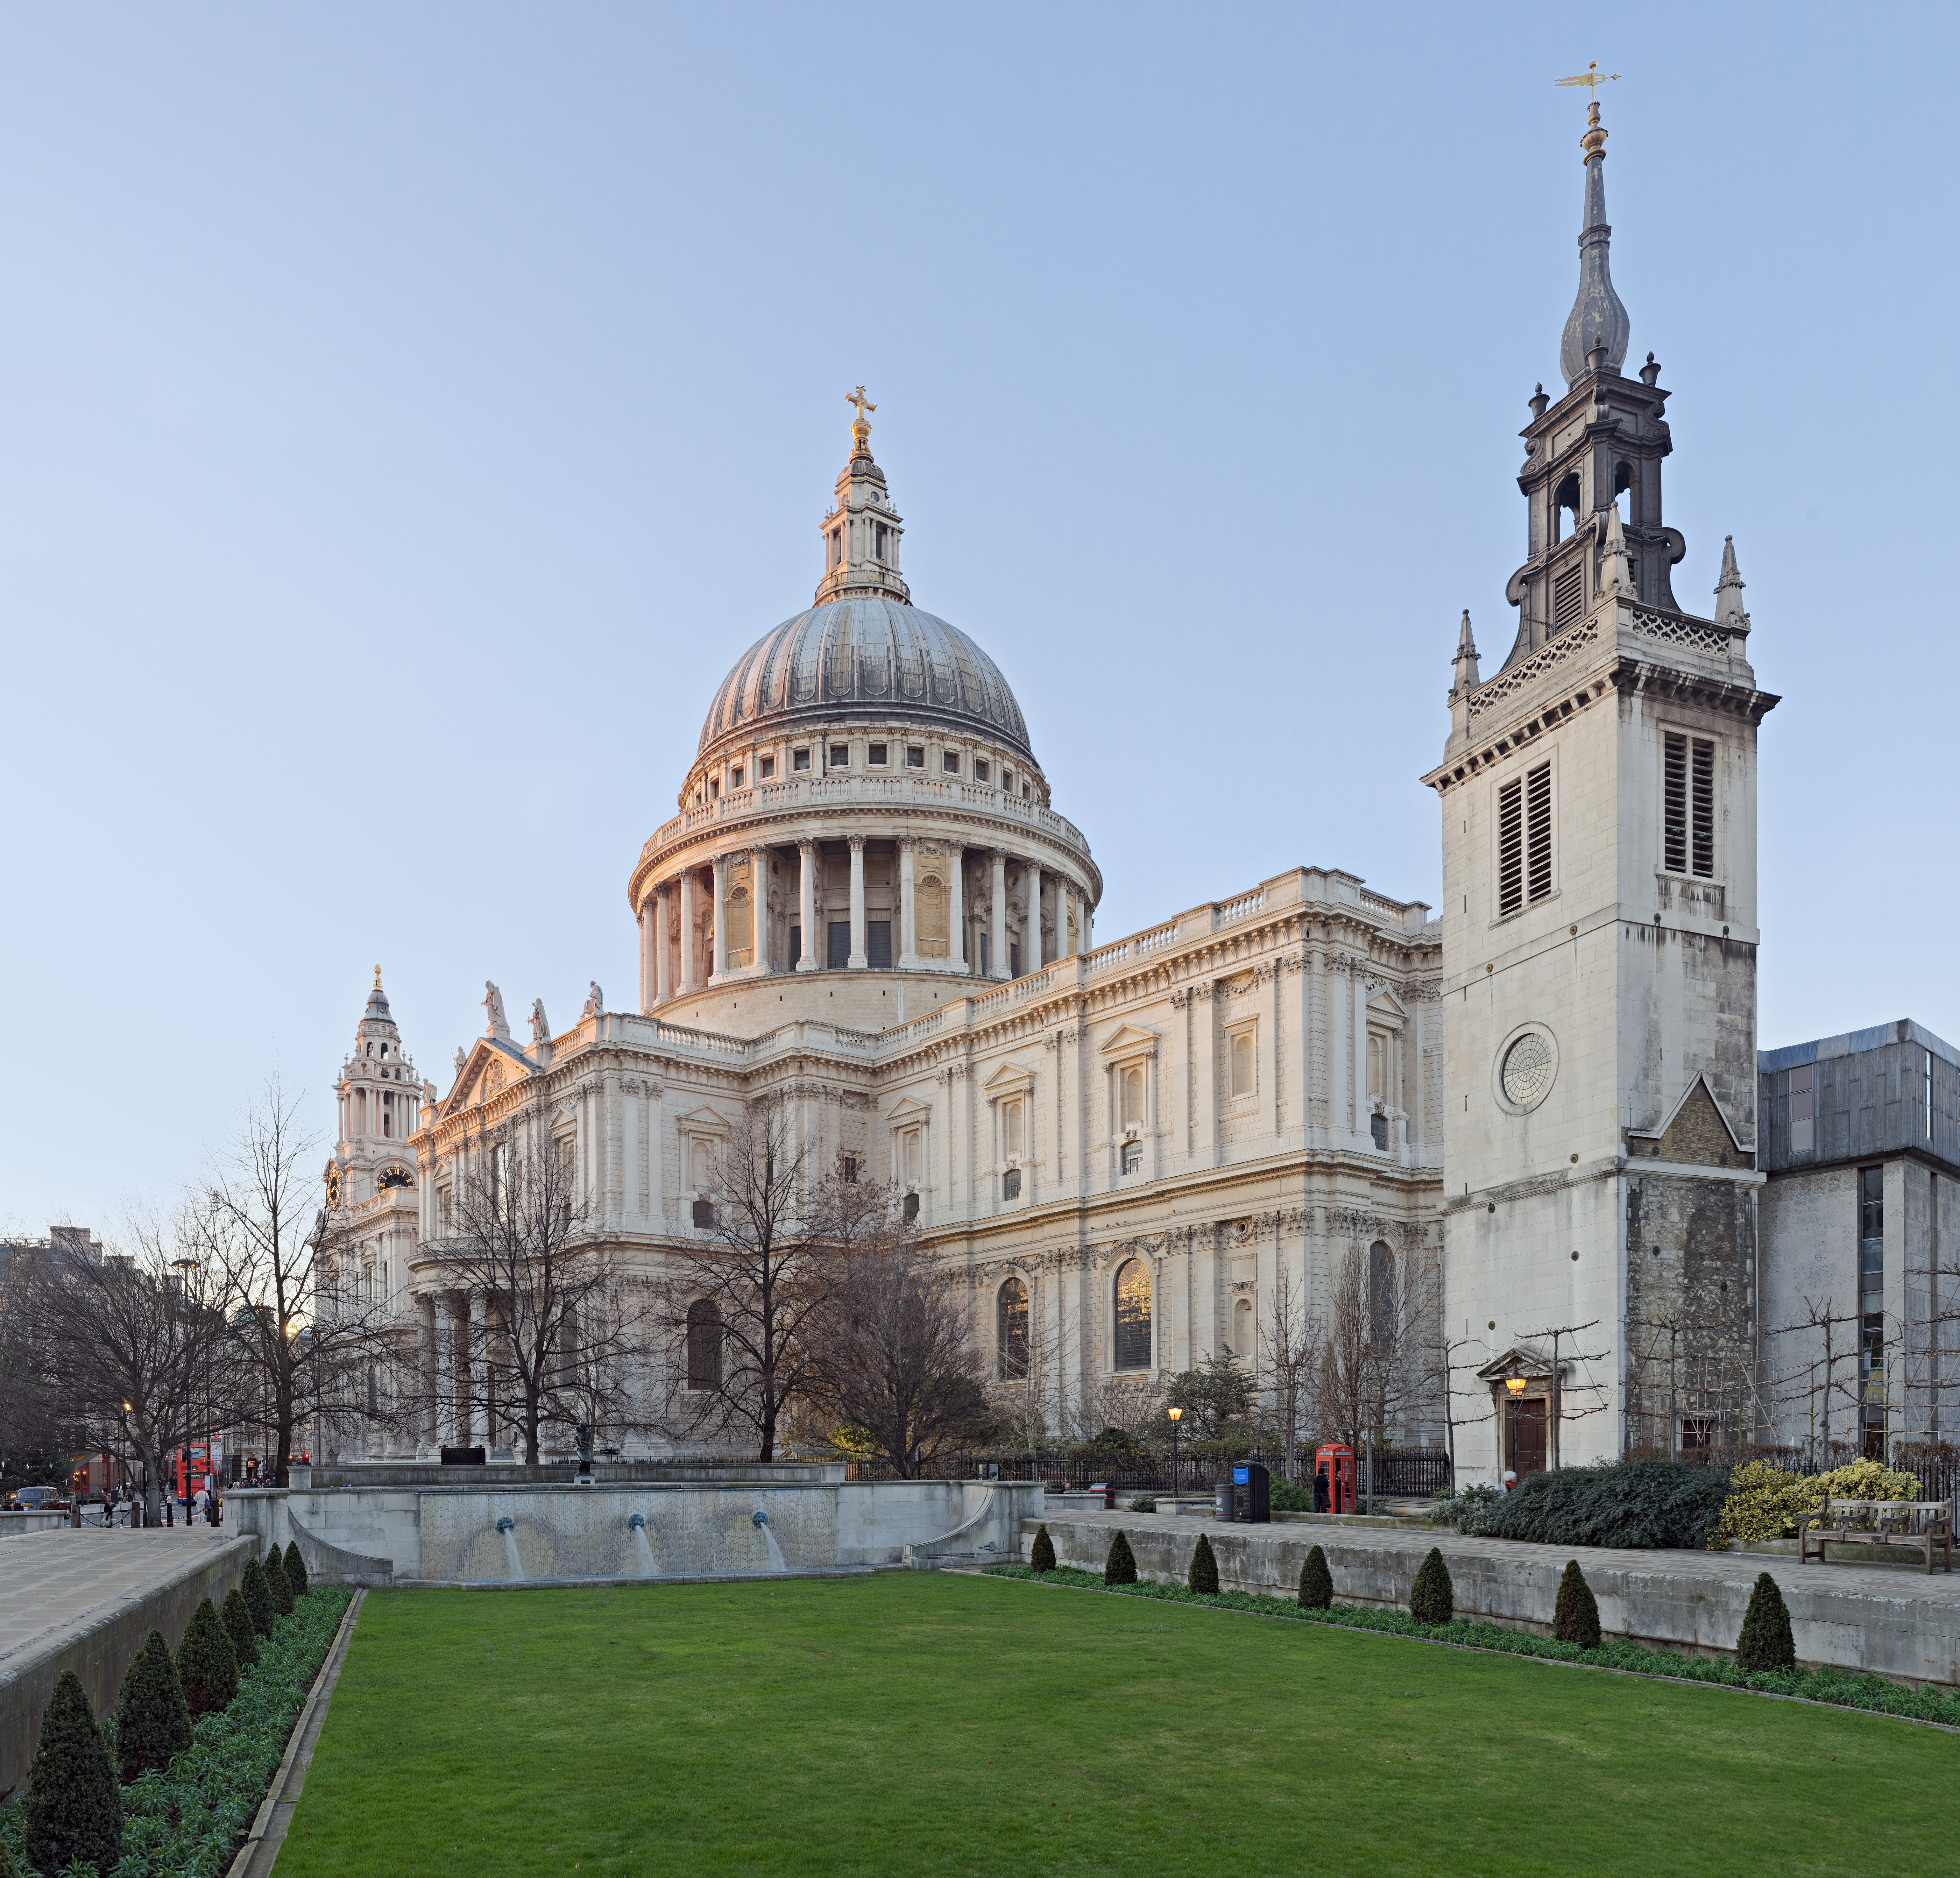 st pauls cathedral St paul's cathedral in london is the seat of the bishop of london and a major  london landmark it is located on ludgate hill in the financial district known as.